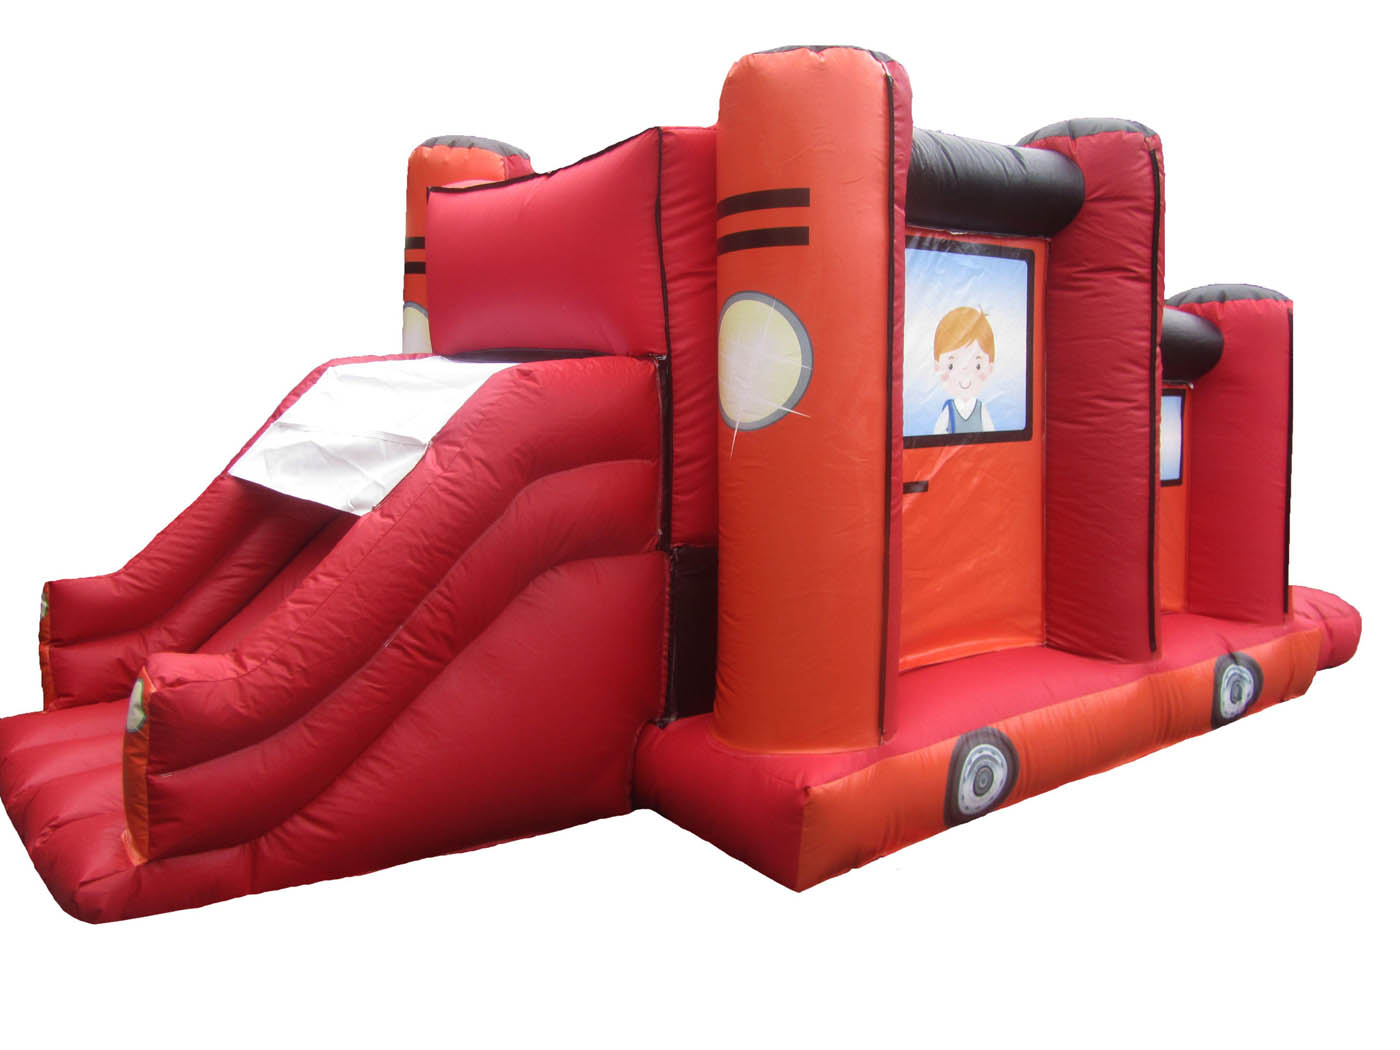 Jeep-inflatable-obstacle-course-slide-bouncy-castle-compressor